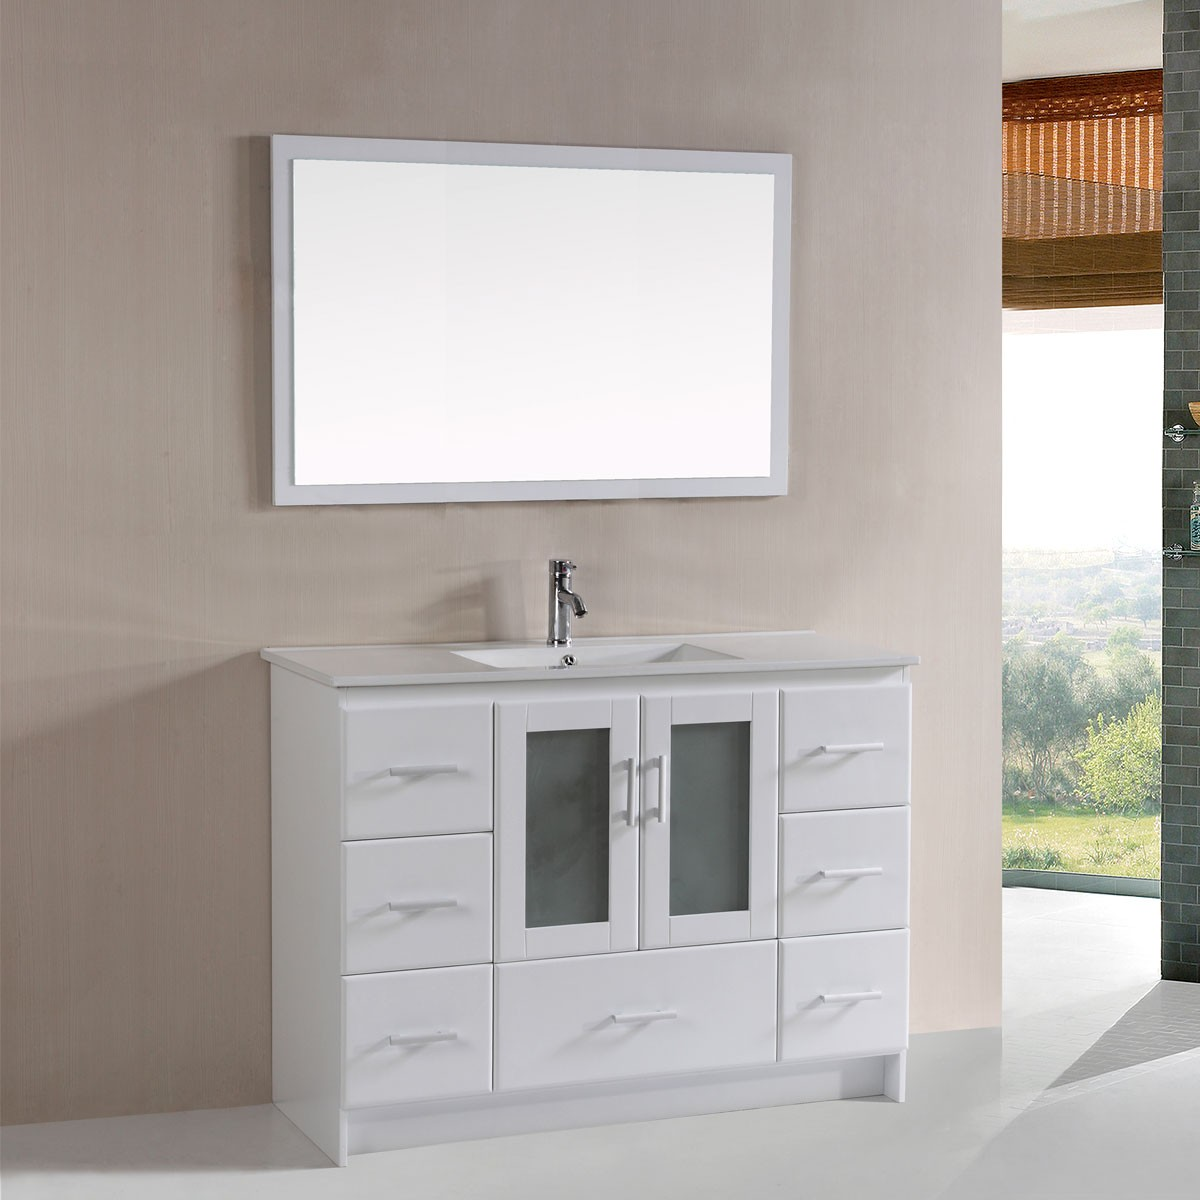 48 In. Plywood Vanity with Basin and Matching Mirror (DK-T9312-48W-SET)